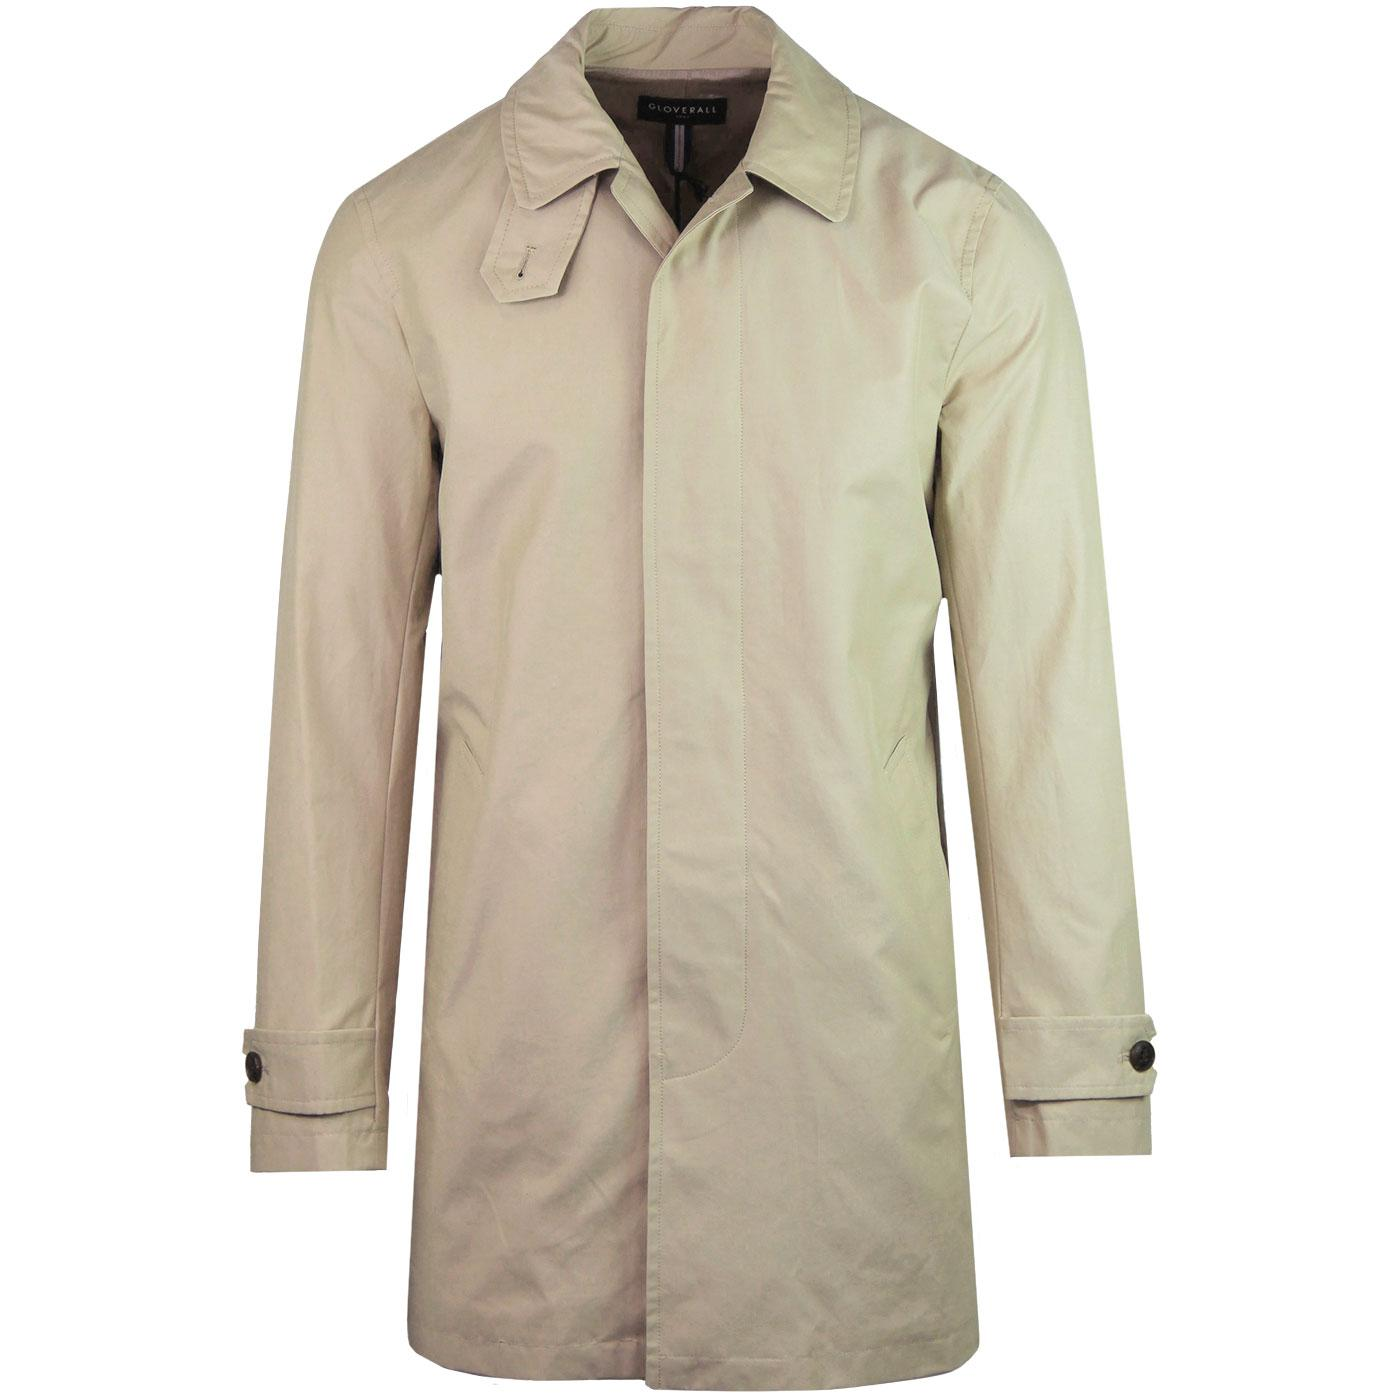 Mansell GLOVERALL Mod Made in England Car Coat